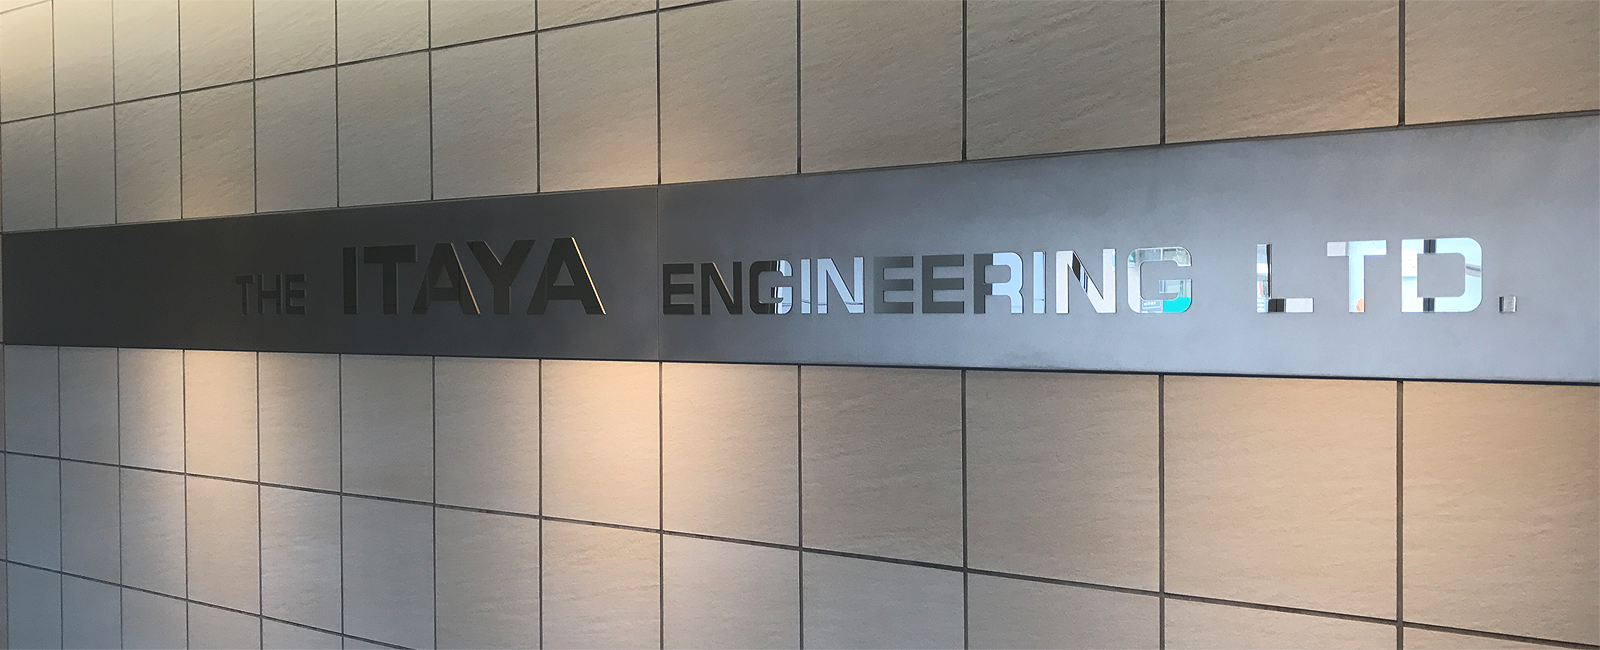 Itaya Engineering